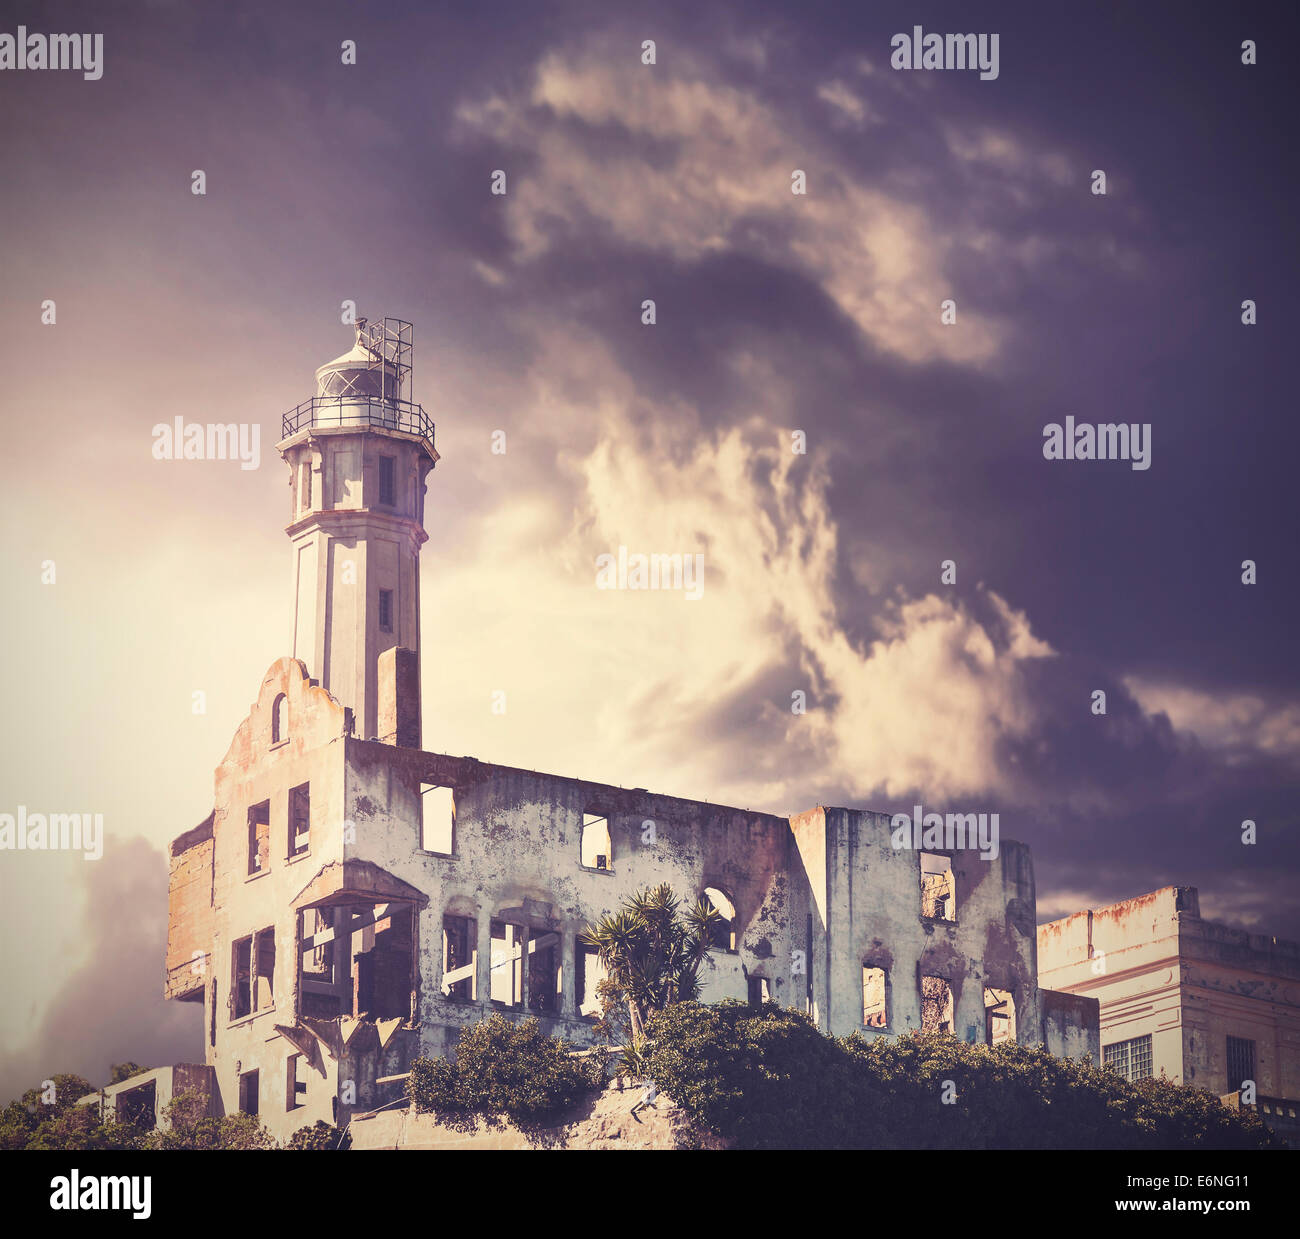 Vintage picture of dramatic rainy sky over Alcatraz Island in San Francisco, USA. - Stock Image